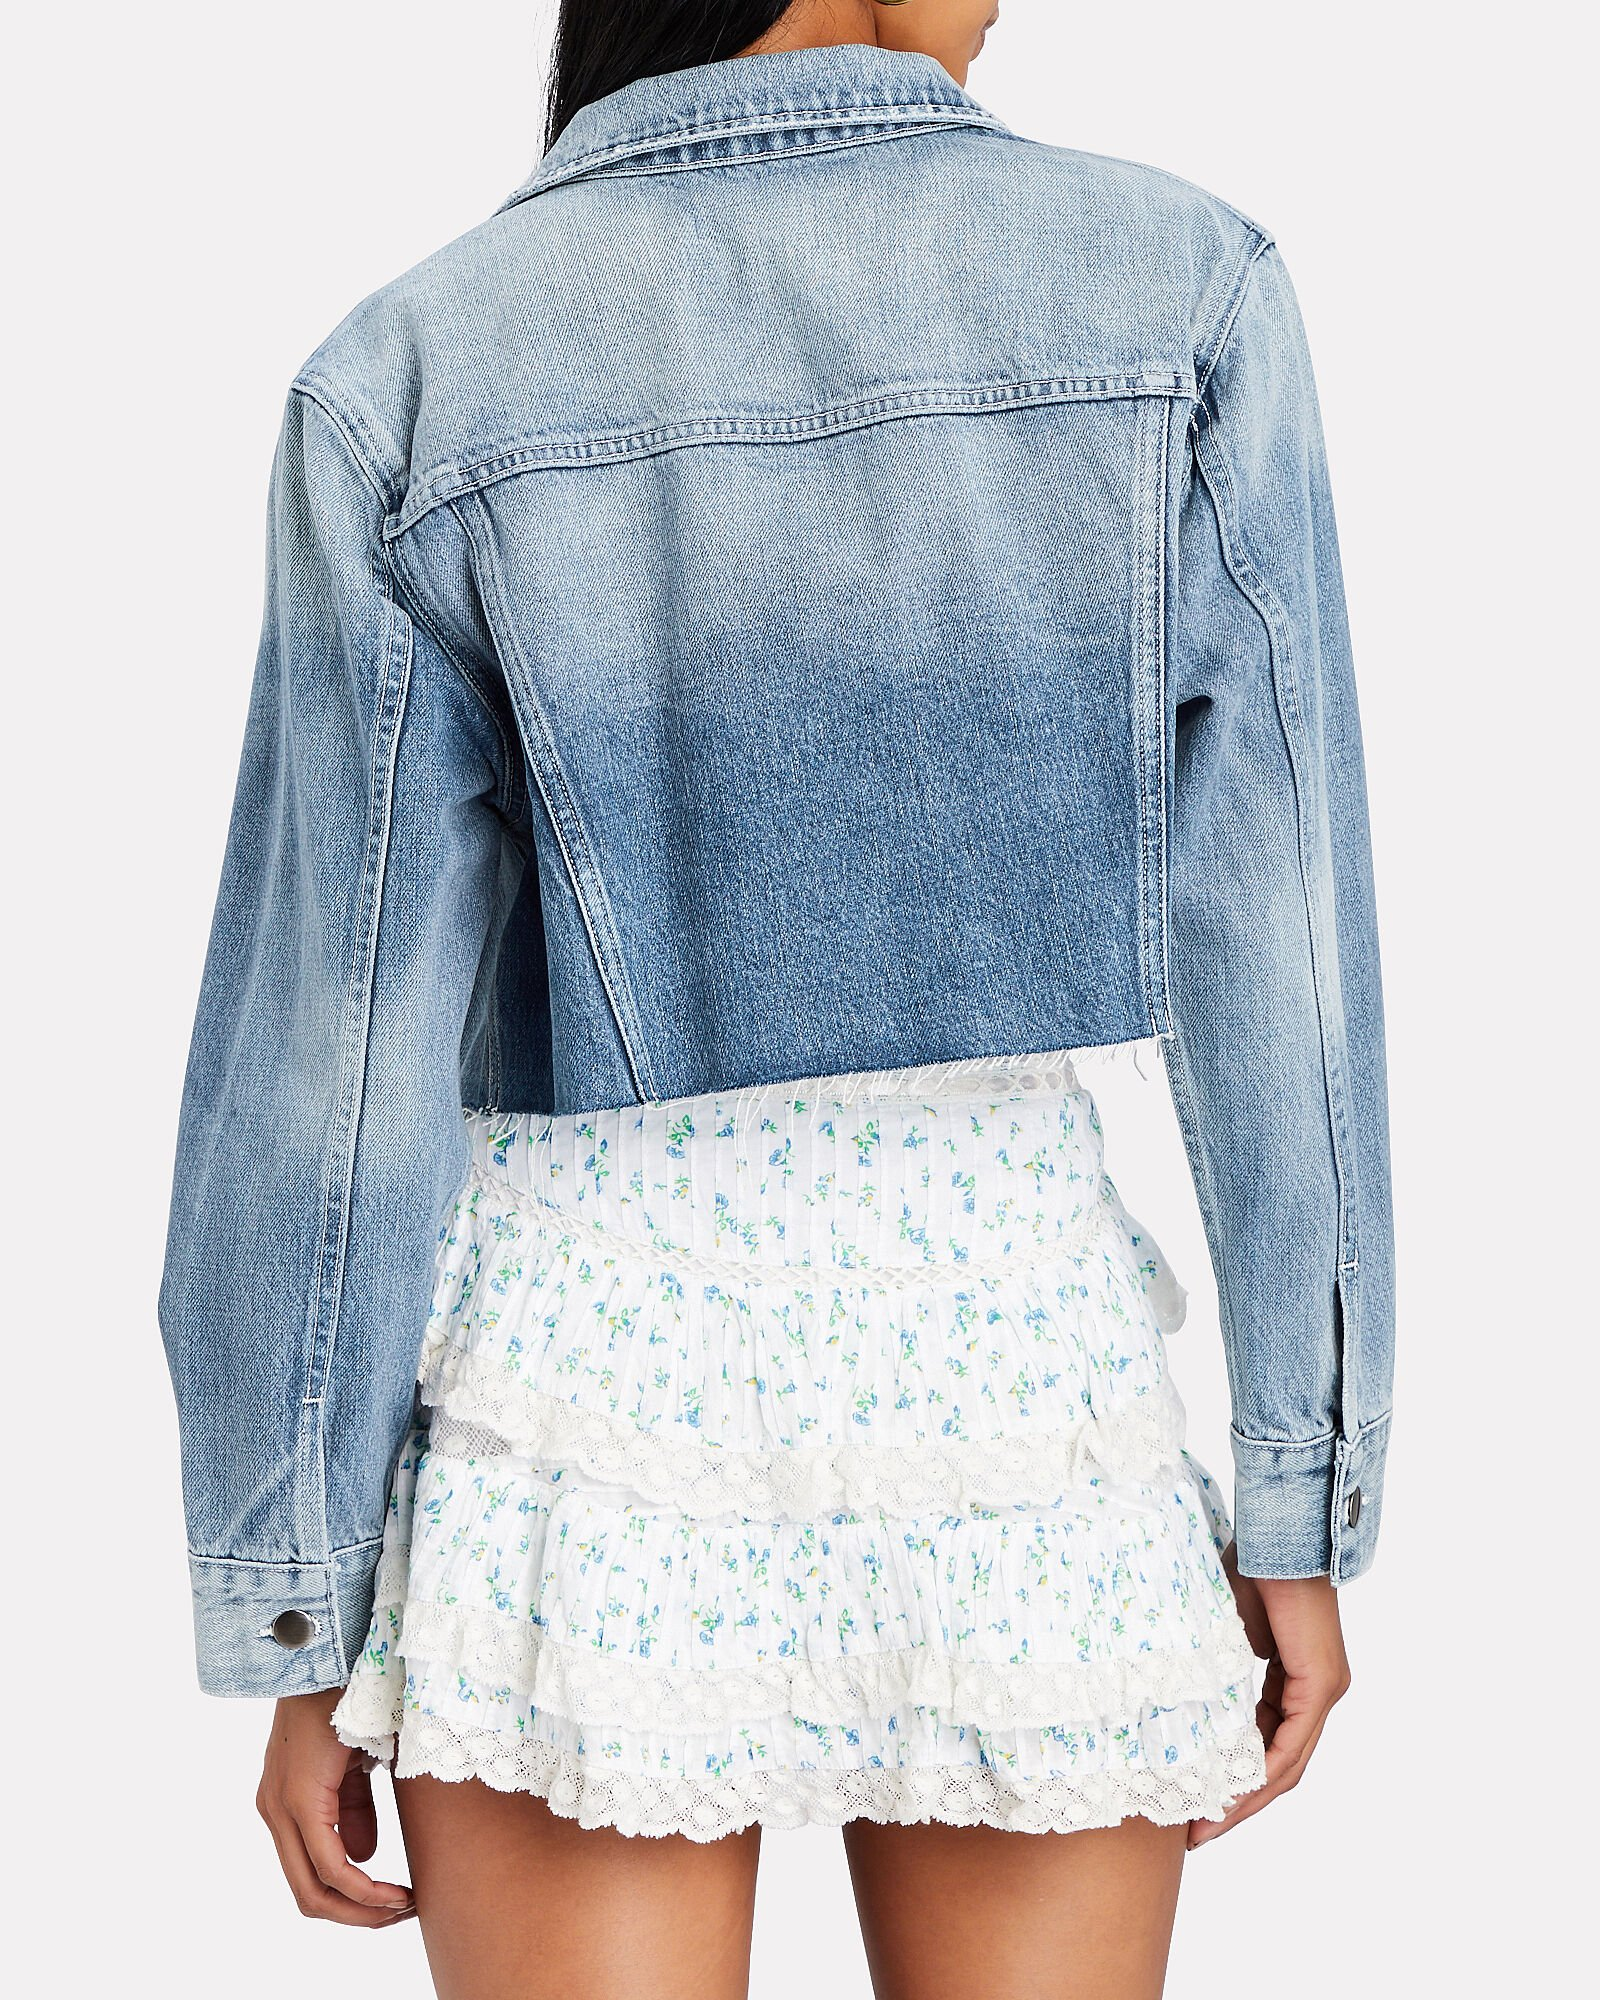 Ultra Crop Denim Jacket, , hi-res